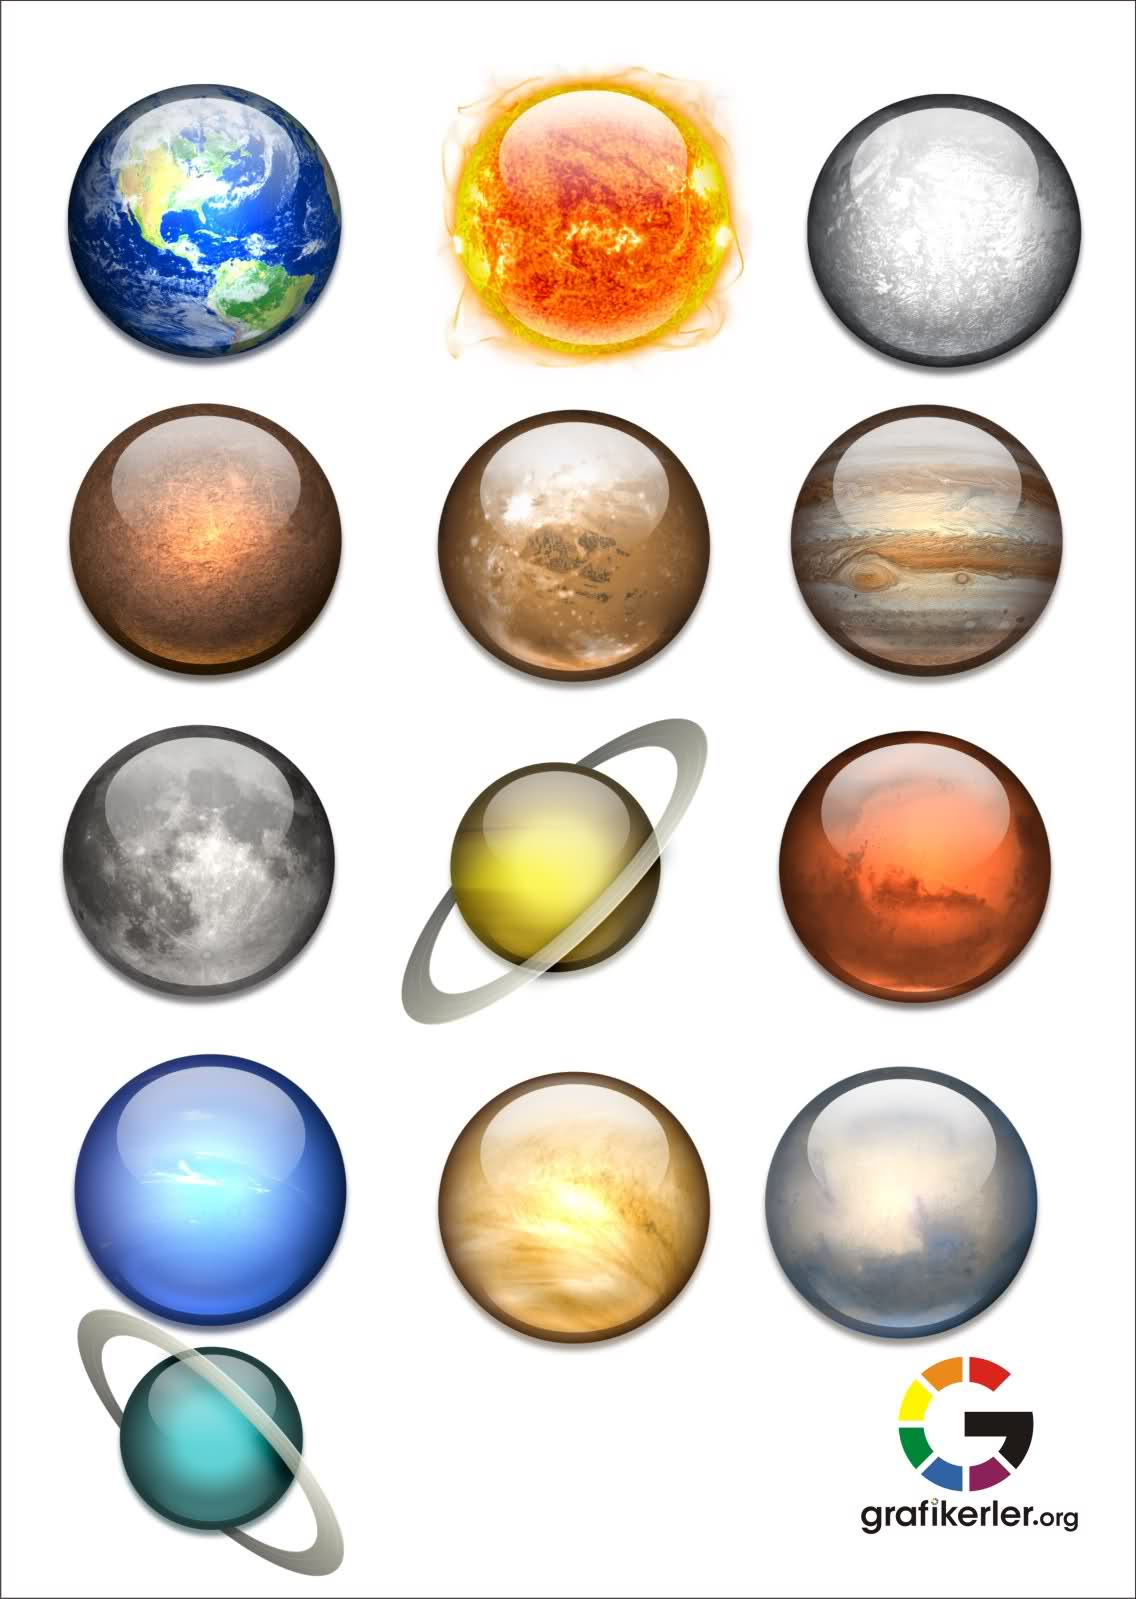 http://rapidshare pluspng.com/files/415439028/Ceres.png ·  http://rapidshare pluspng.com/files/415439115/Earth.png ·  http://rapidshare pluspng.com/files/415439646/Eris.png - Gezegenler PNG